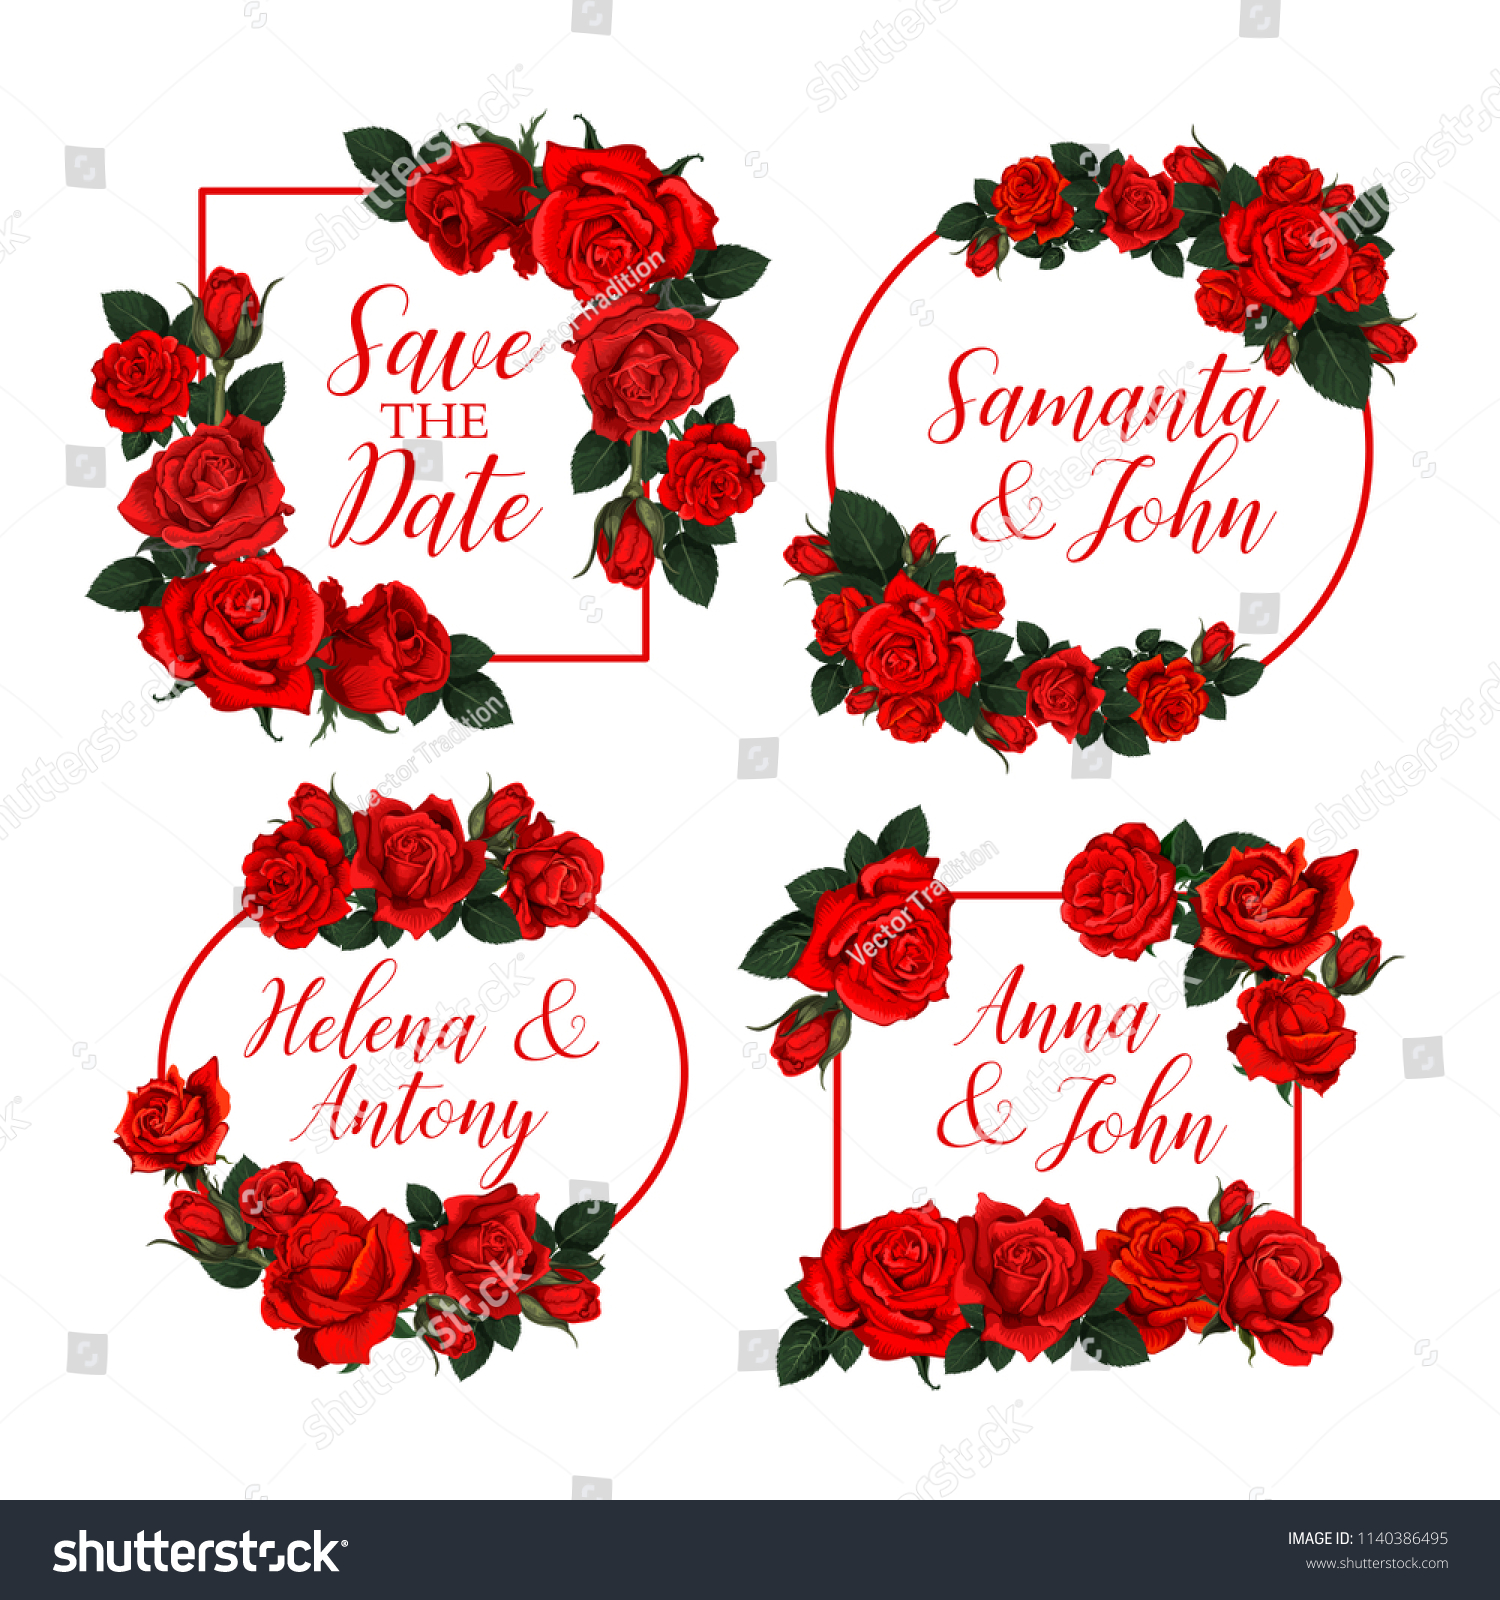 Save Date Floral Frames Red Roses Stock Vector (Royalty Free ...